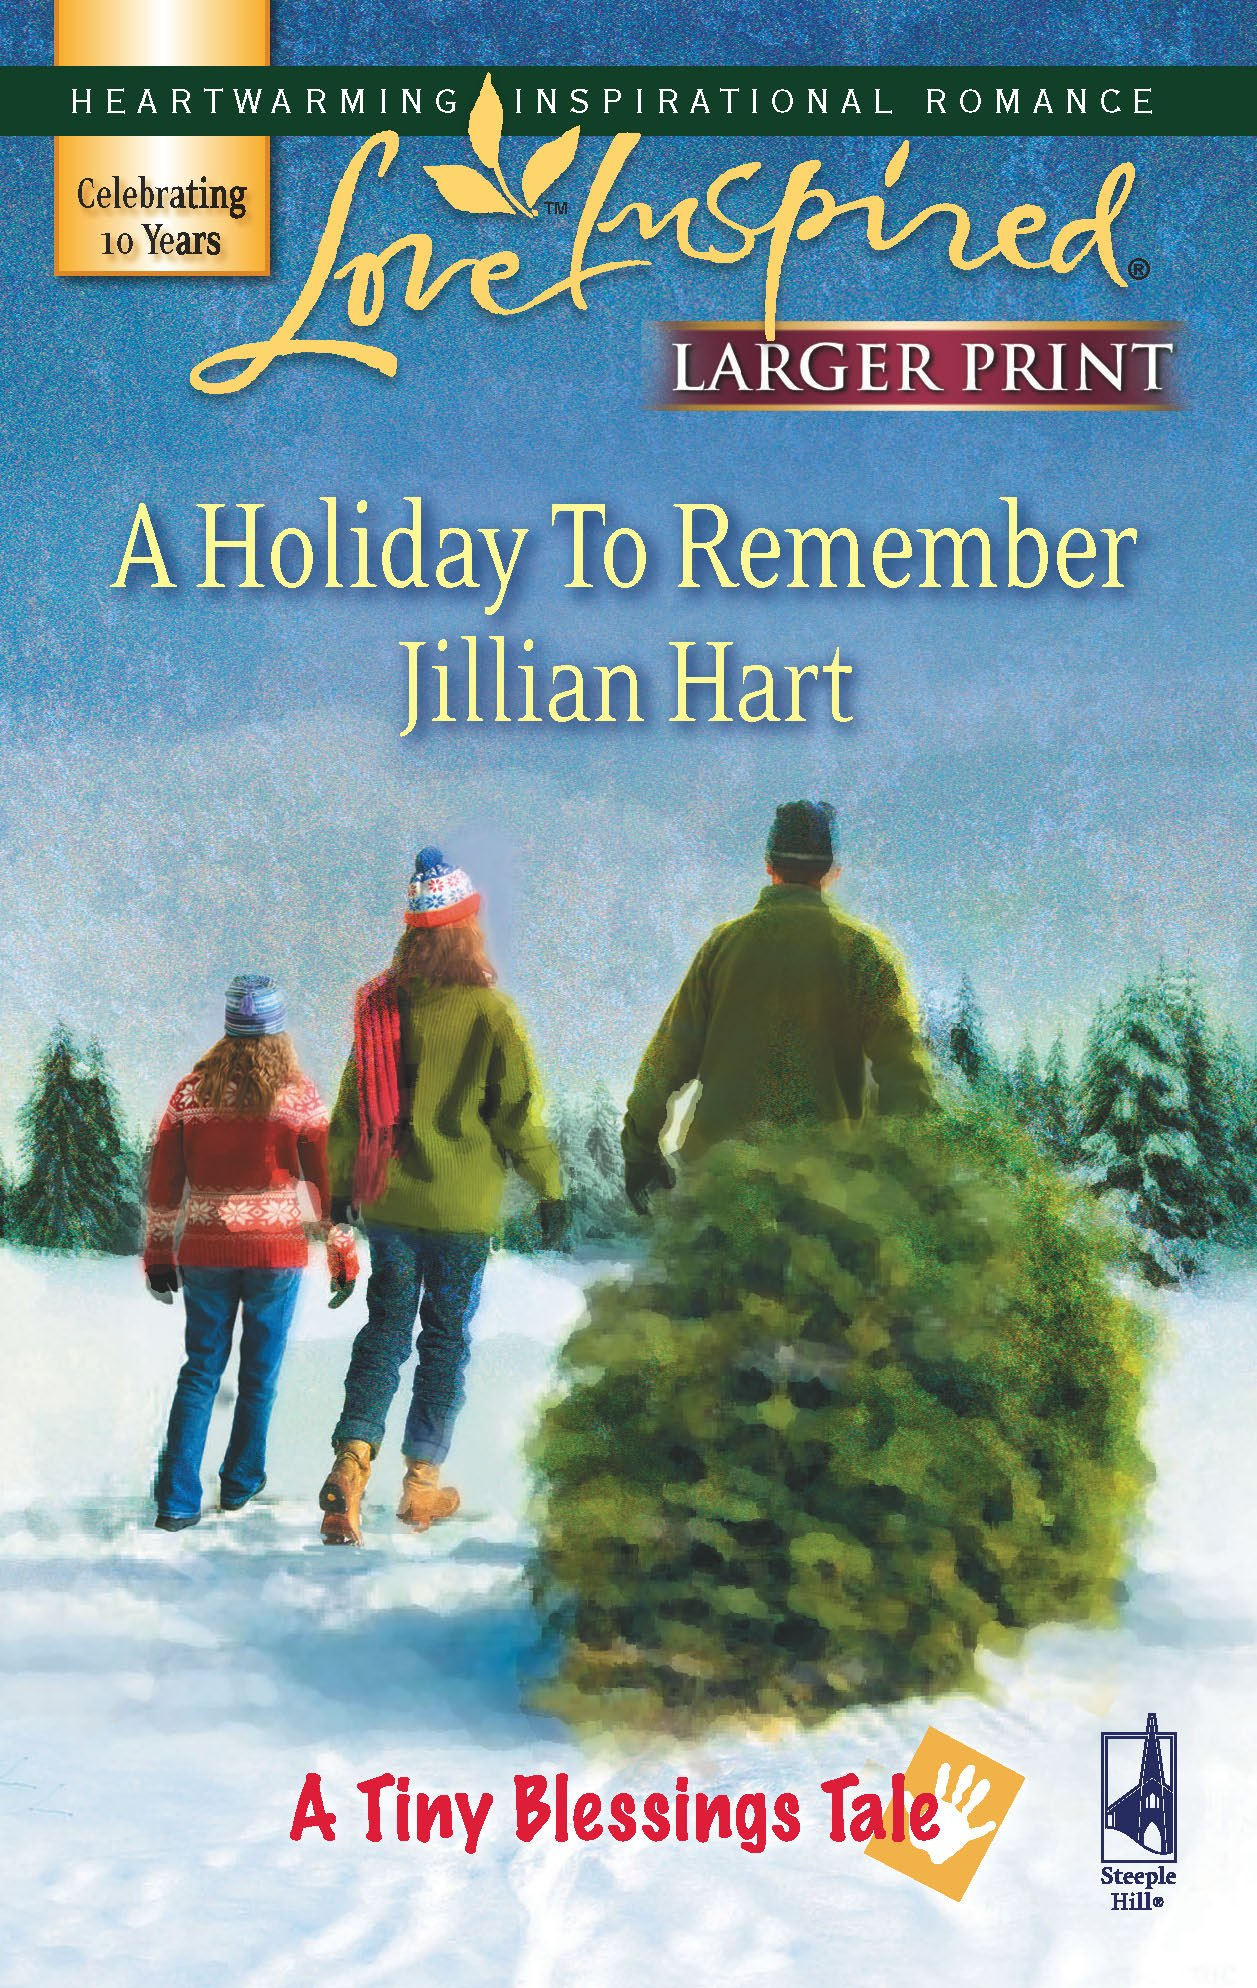 Download A Holiday to Remember (A Tiny Blessings Tale #6) (Larger Print Love Inspired #424) PDF